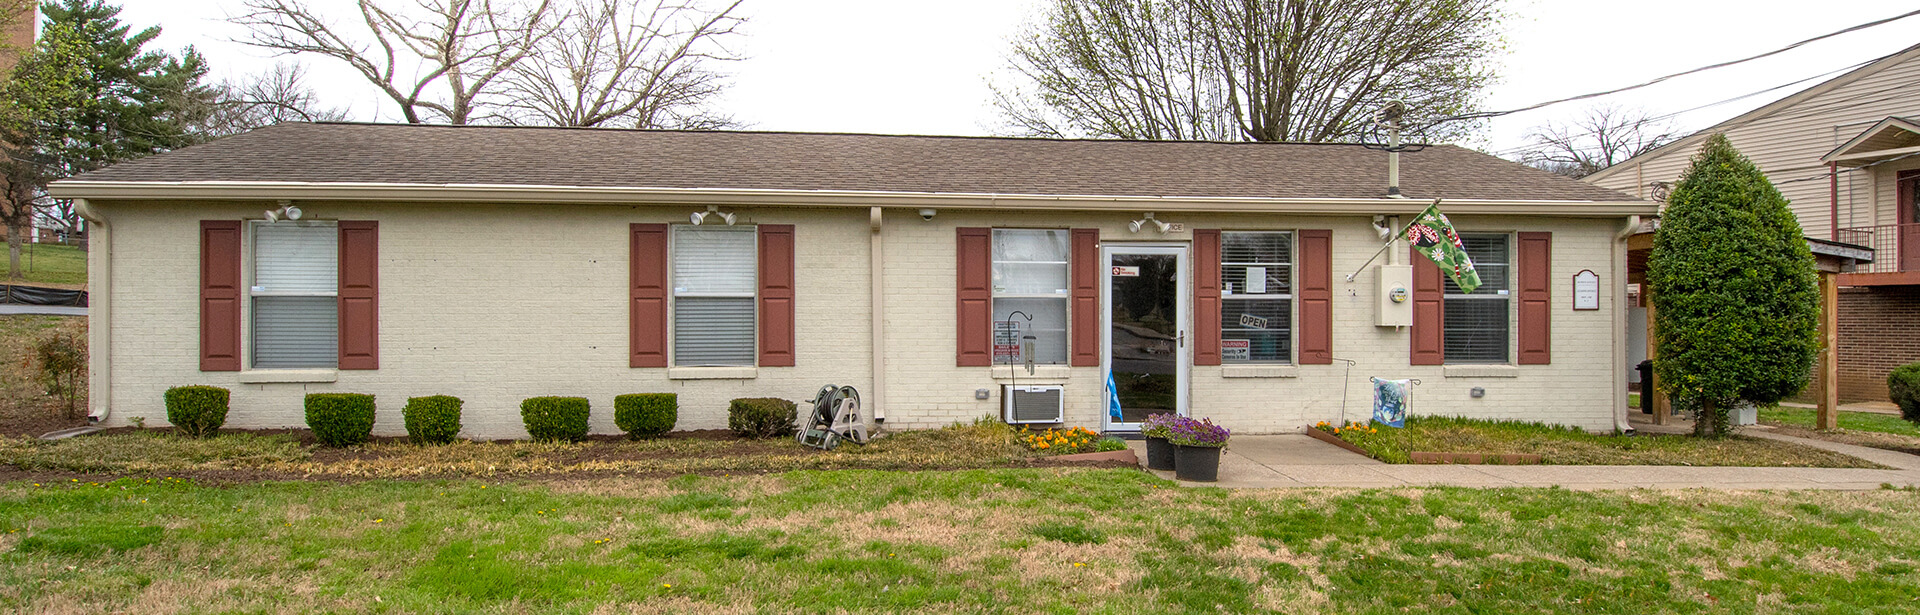 Slideshow image 5Dupont Avenue   Apartments in Madison  TN. One Bedroom Apartments Madison Tn. Home Design Ideas